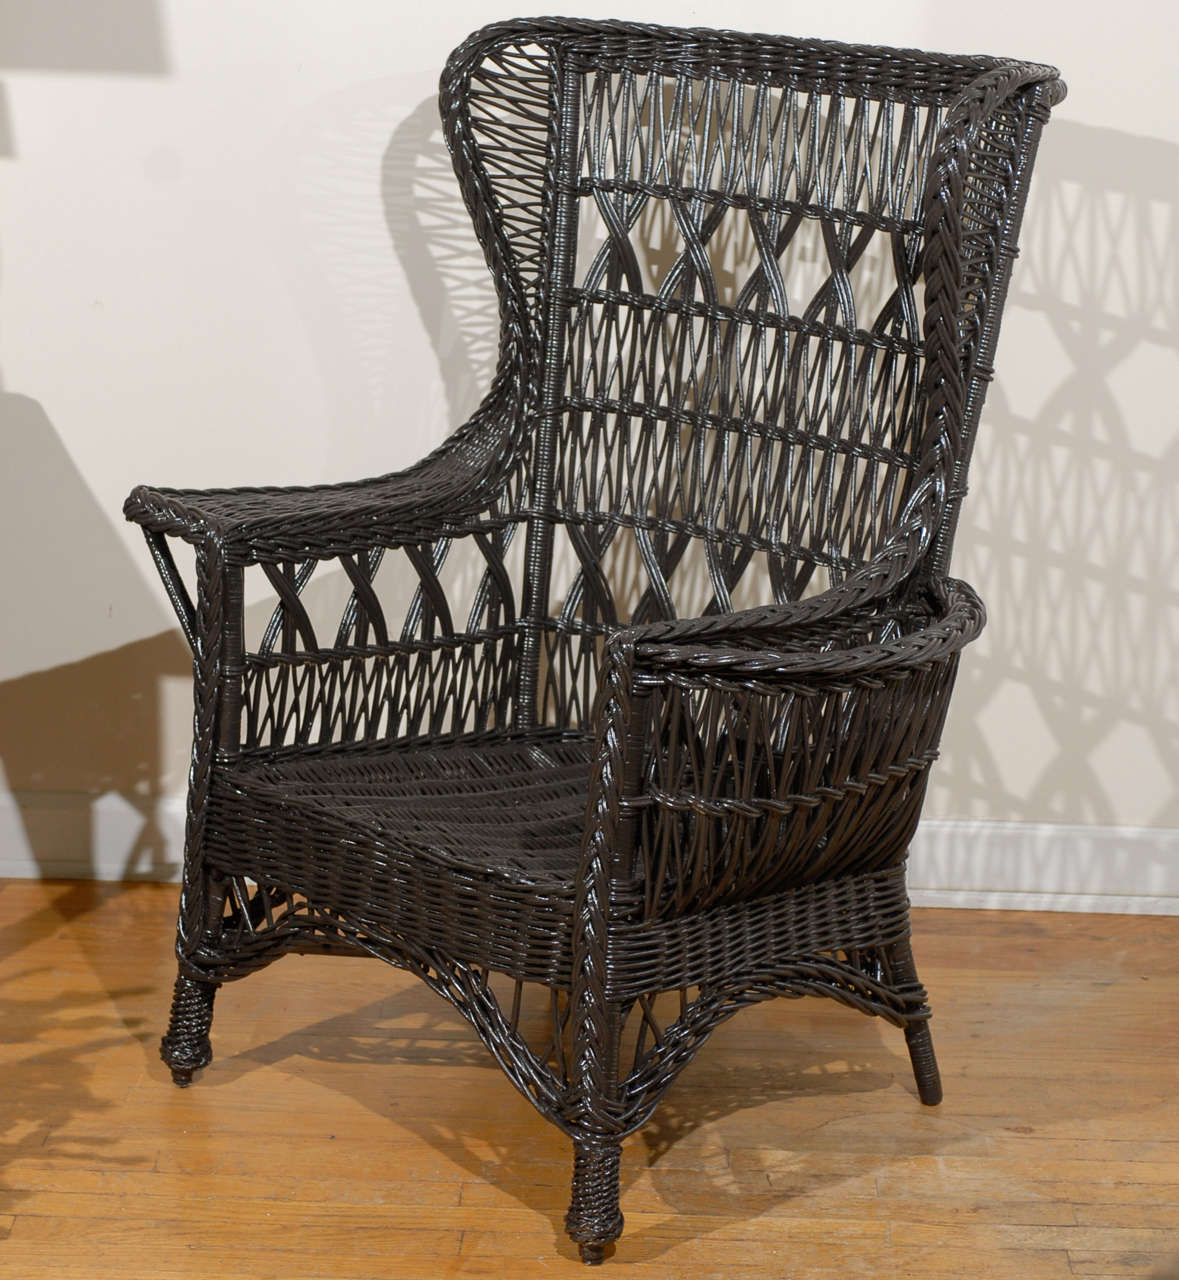 Antique wing chair - Antique American Wicker Wing Chair With Magazine Pocket 2